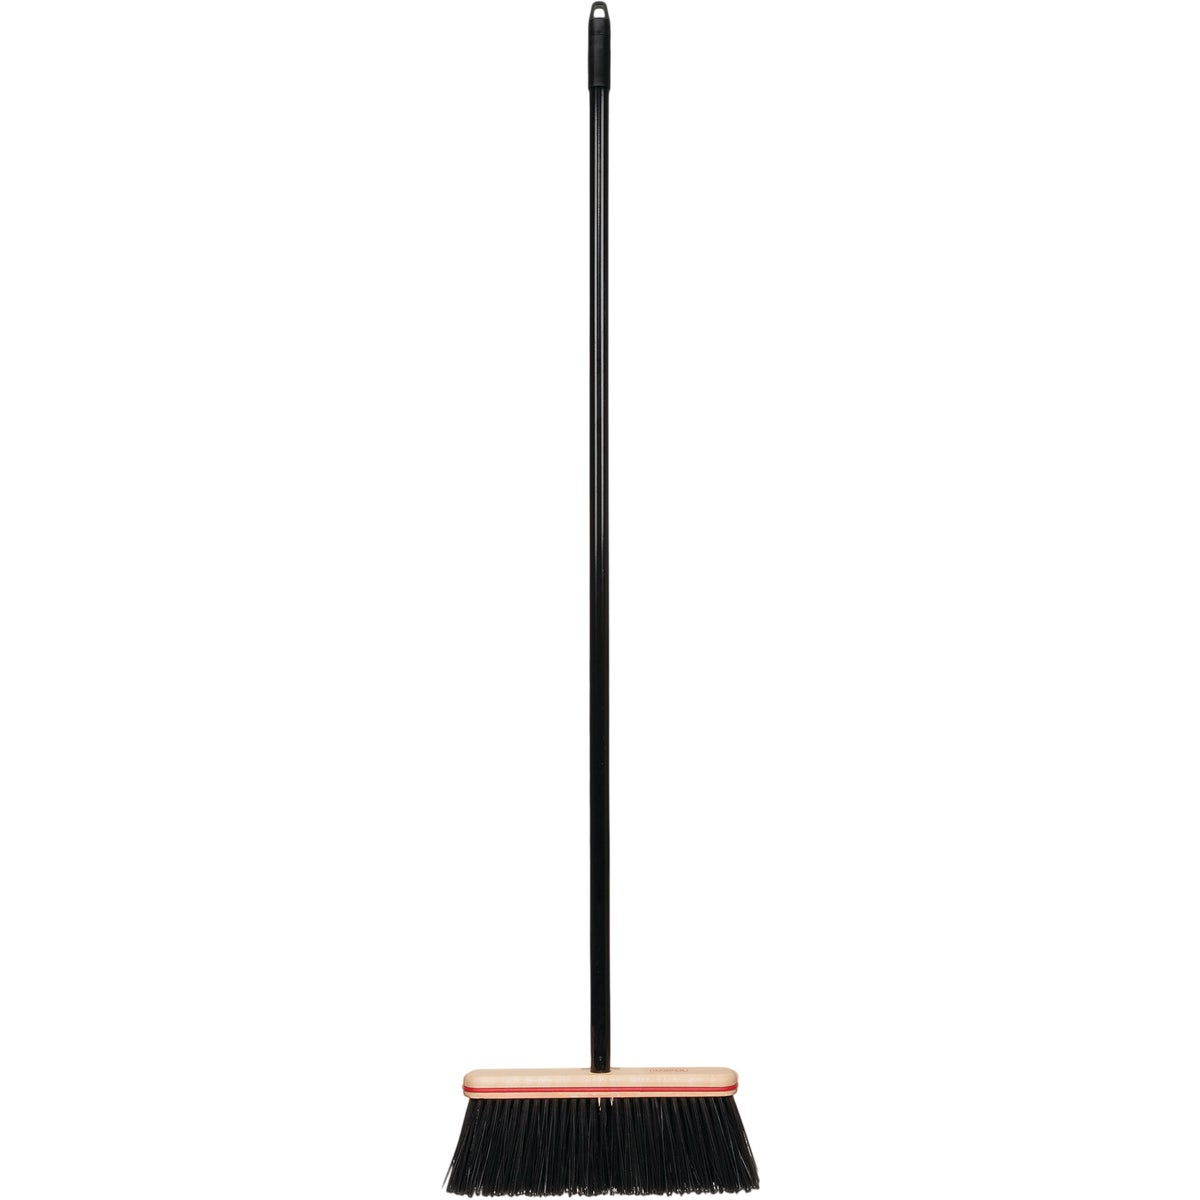 OUTDOOR ROUGH BROOM